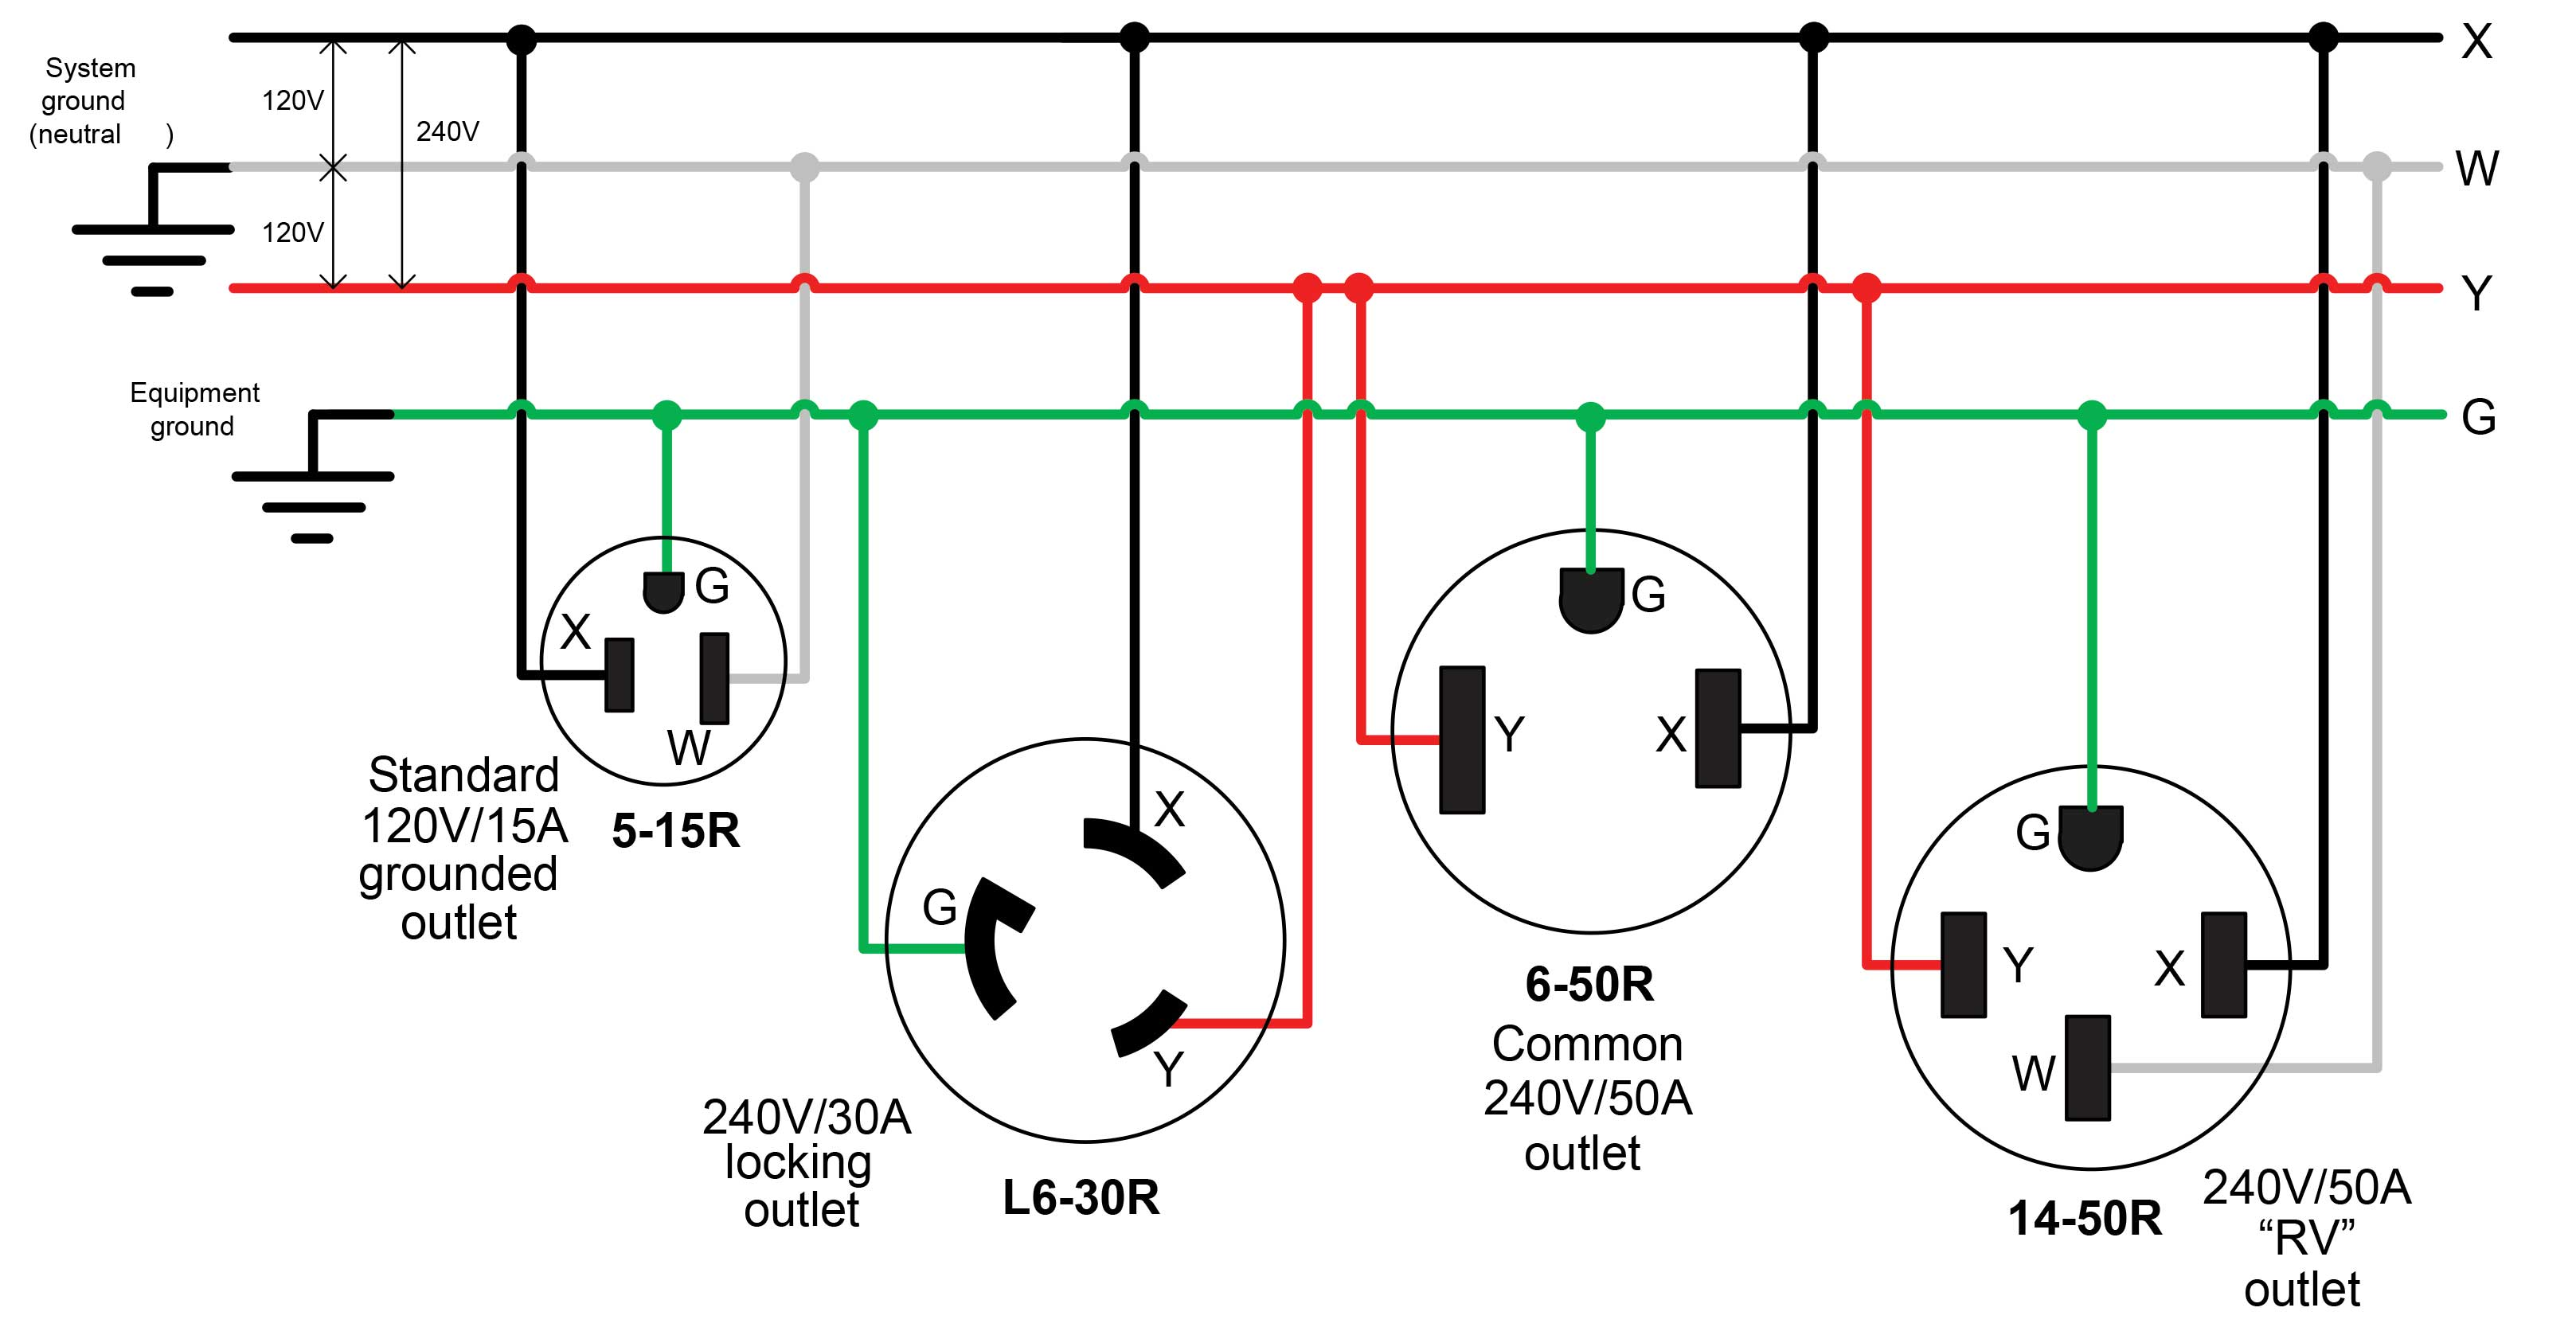 figure_4?resize=620%2C320 understanding 240v ac power for heavy duty power tools make 240v single phase wiring at virtualis.co